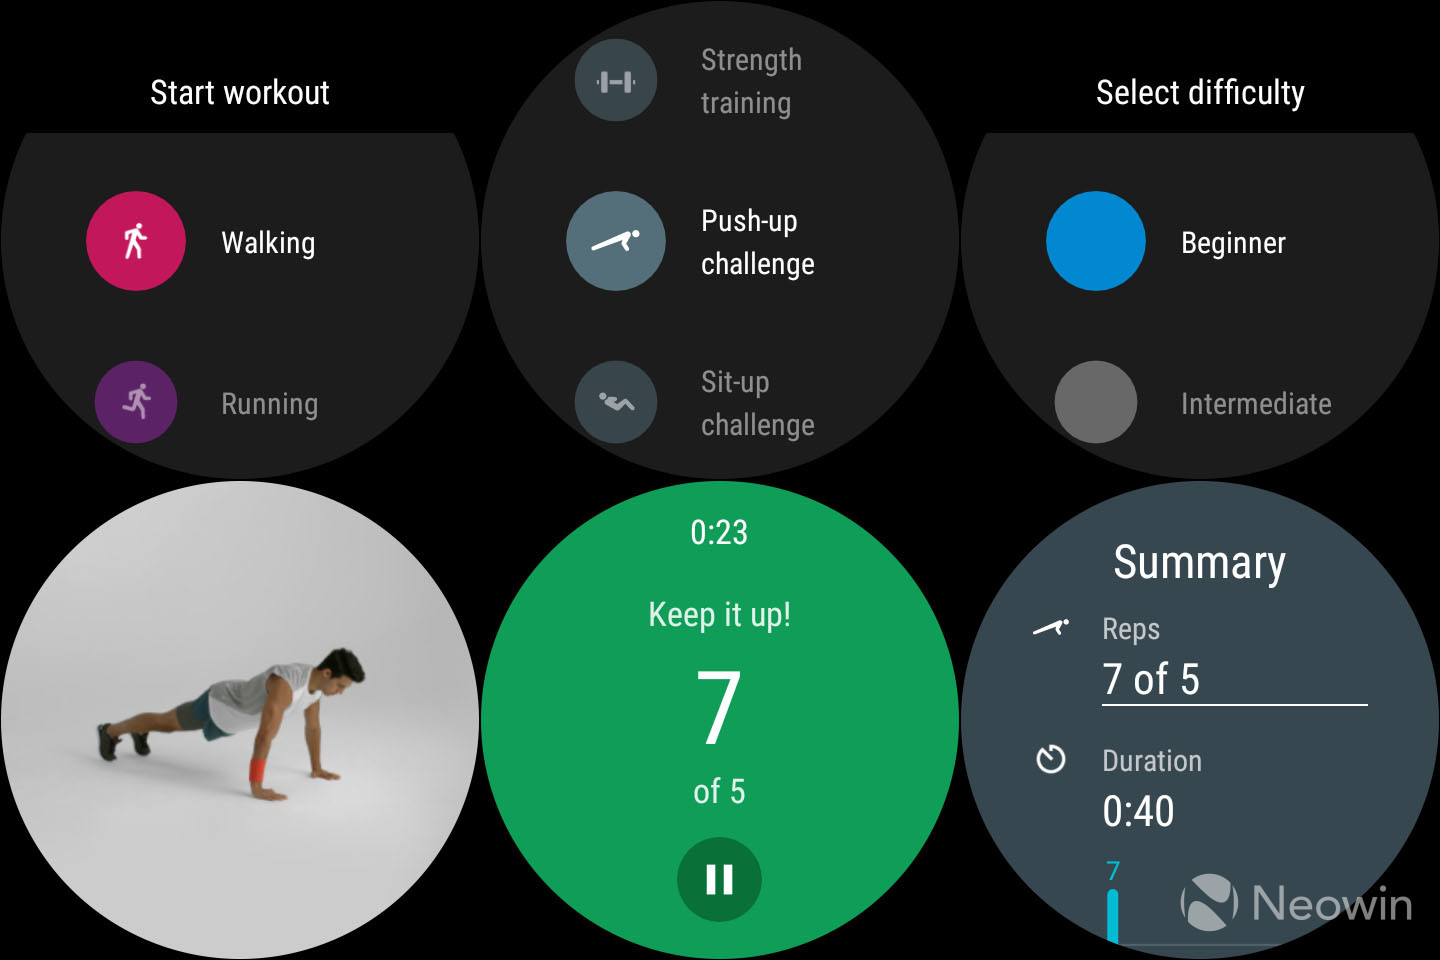 LG Watch Sport review: It's the complete package - Neowin